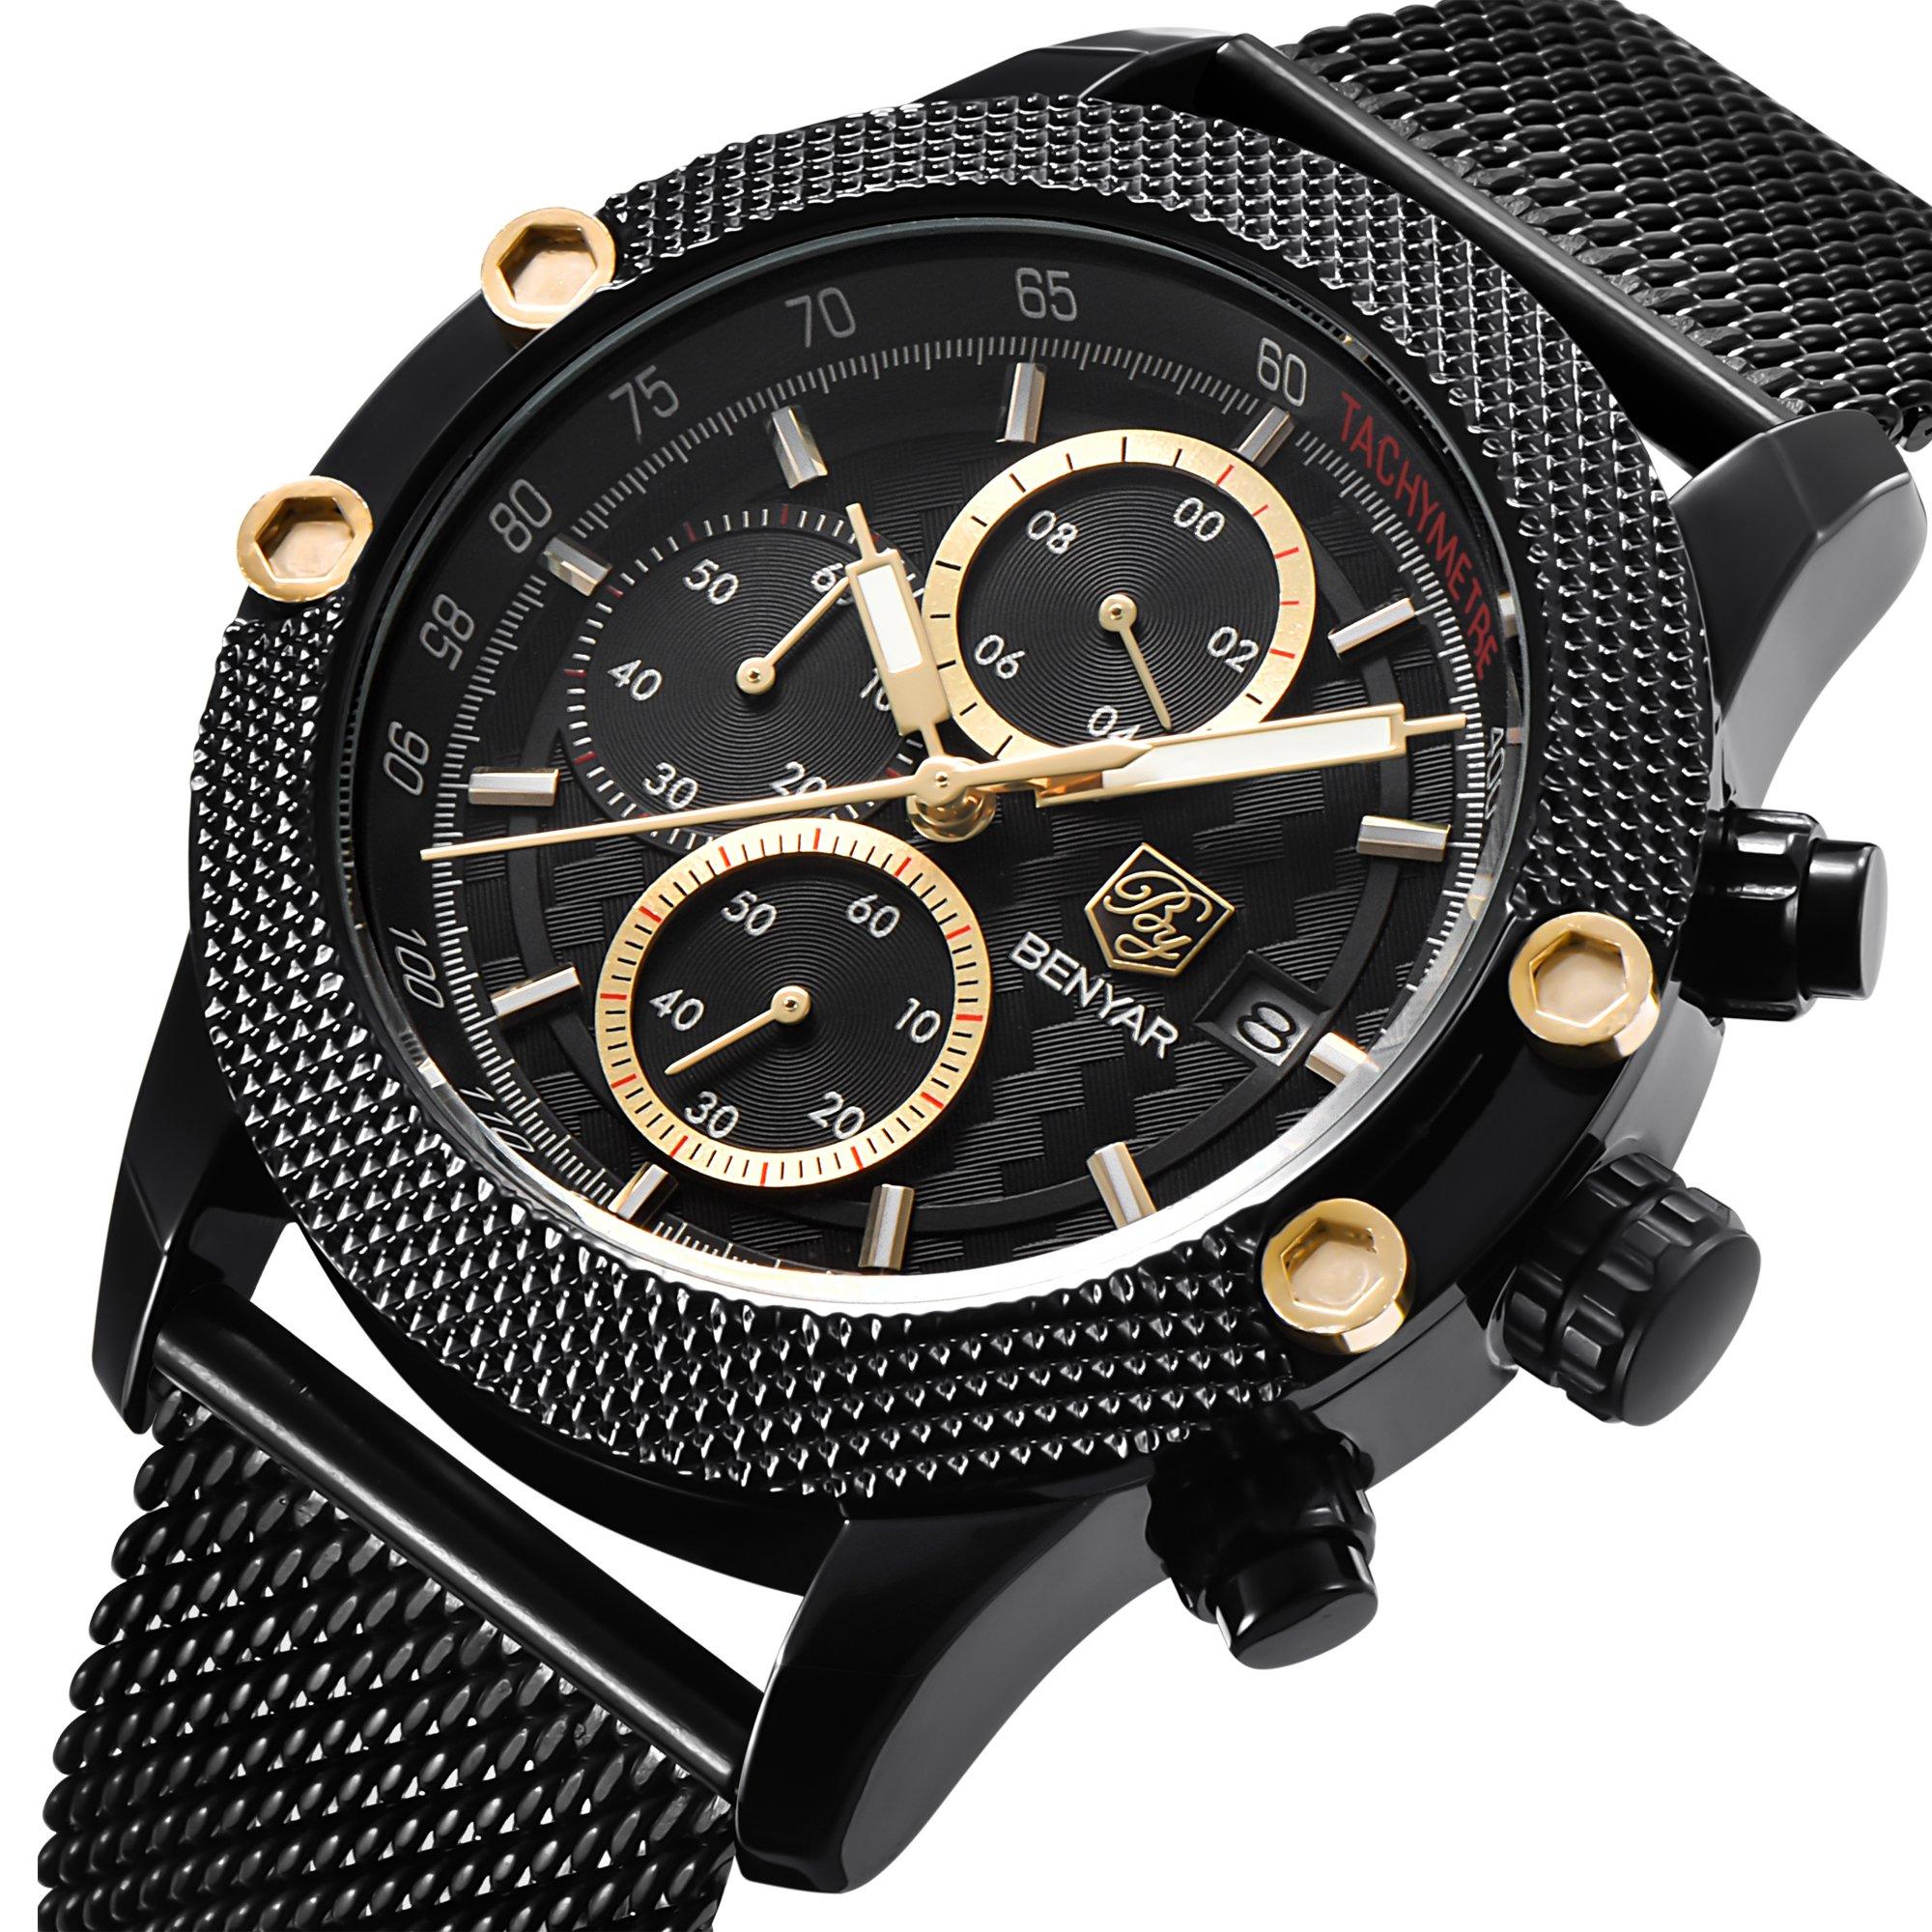 BENYAR Men Watch 5109M Quartz Chronograph Waterproof Watches Business Casual Sport Mesh Band Watch(Black&Gold)